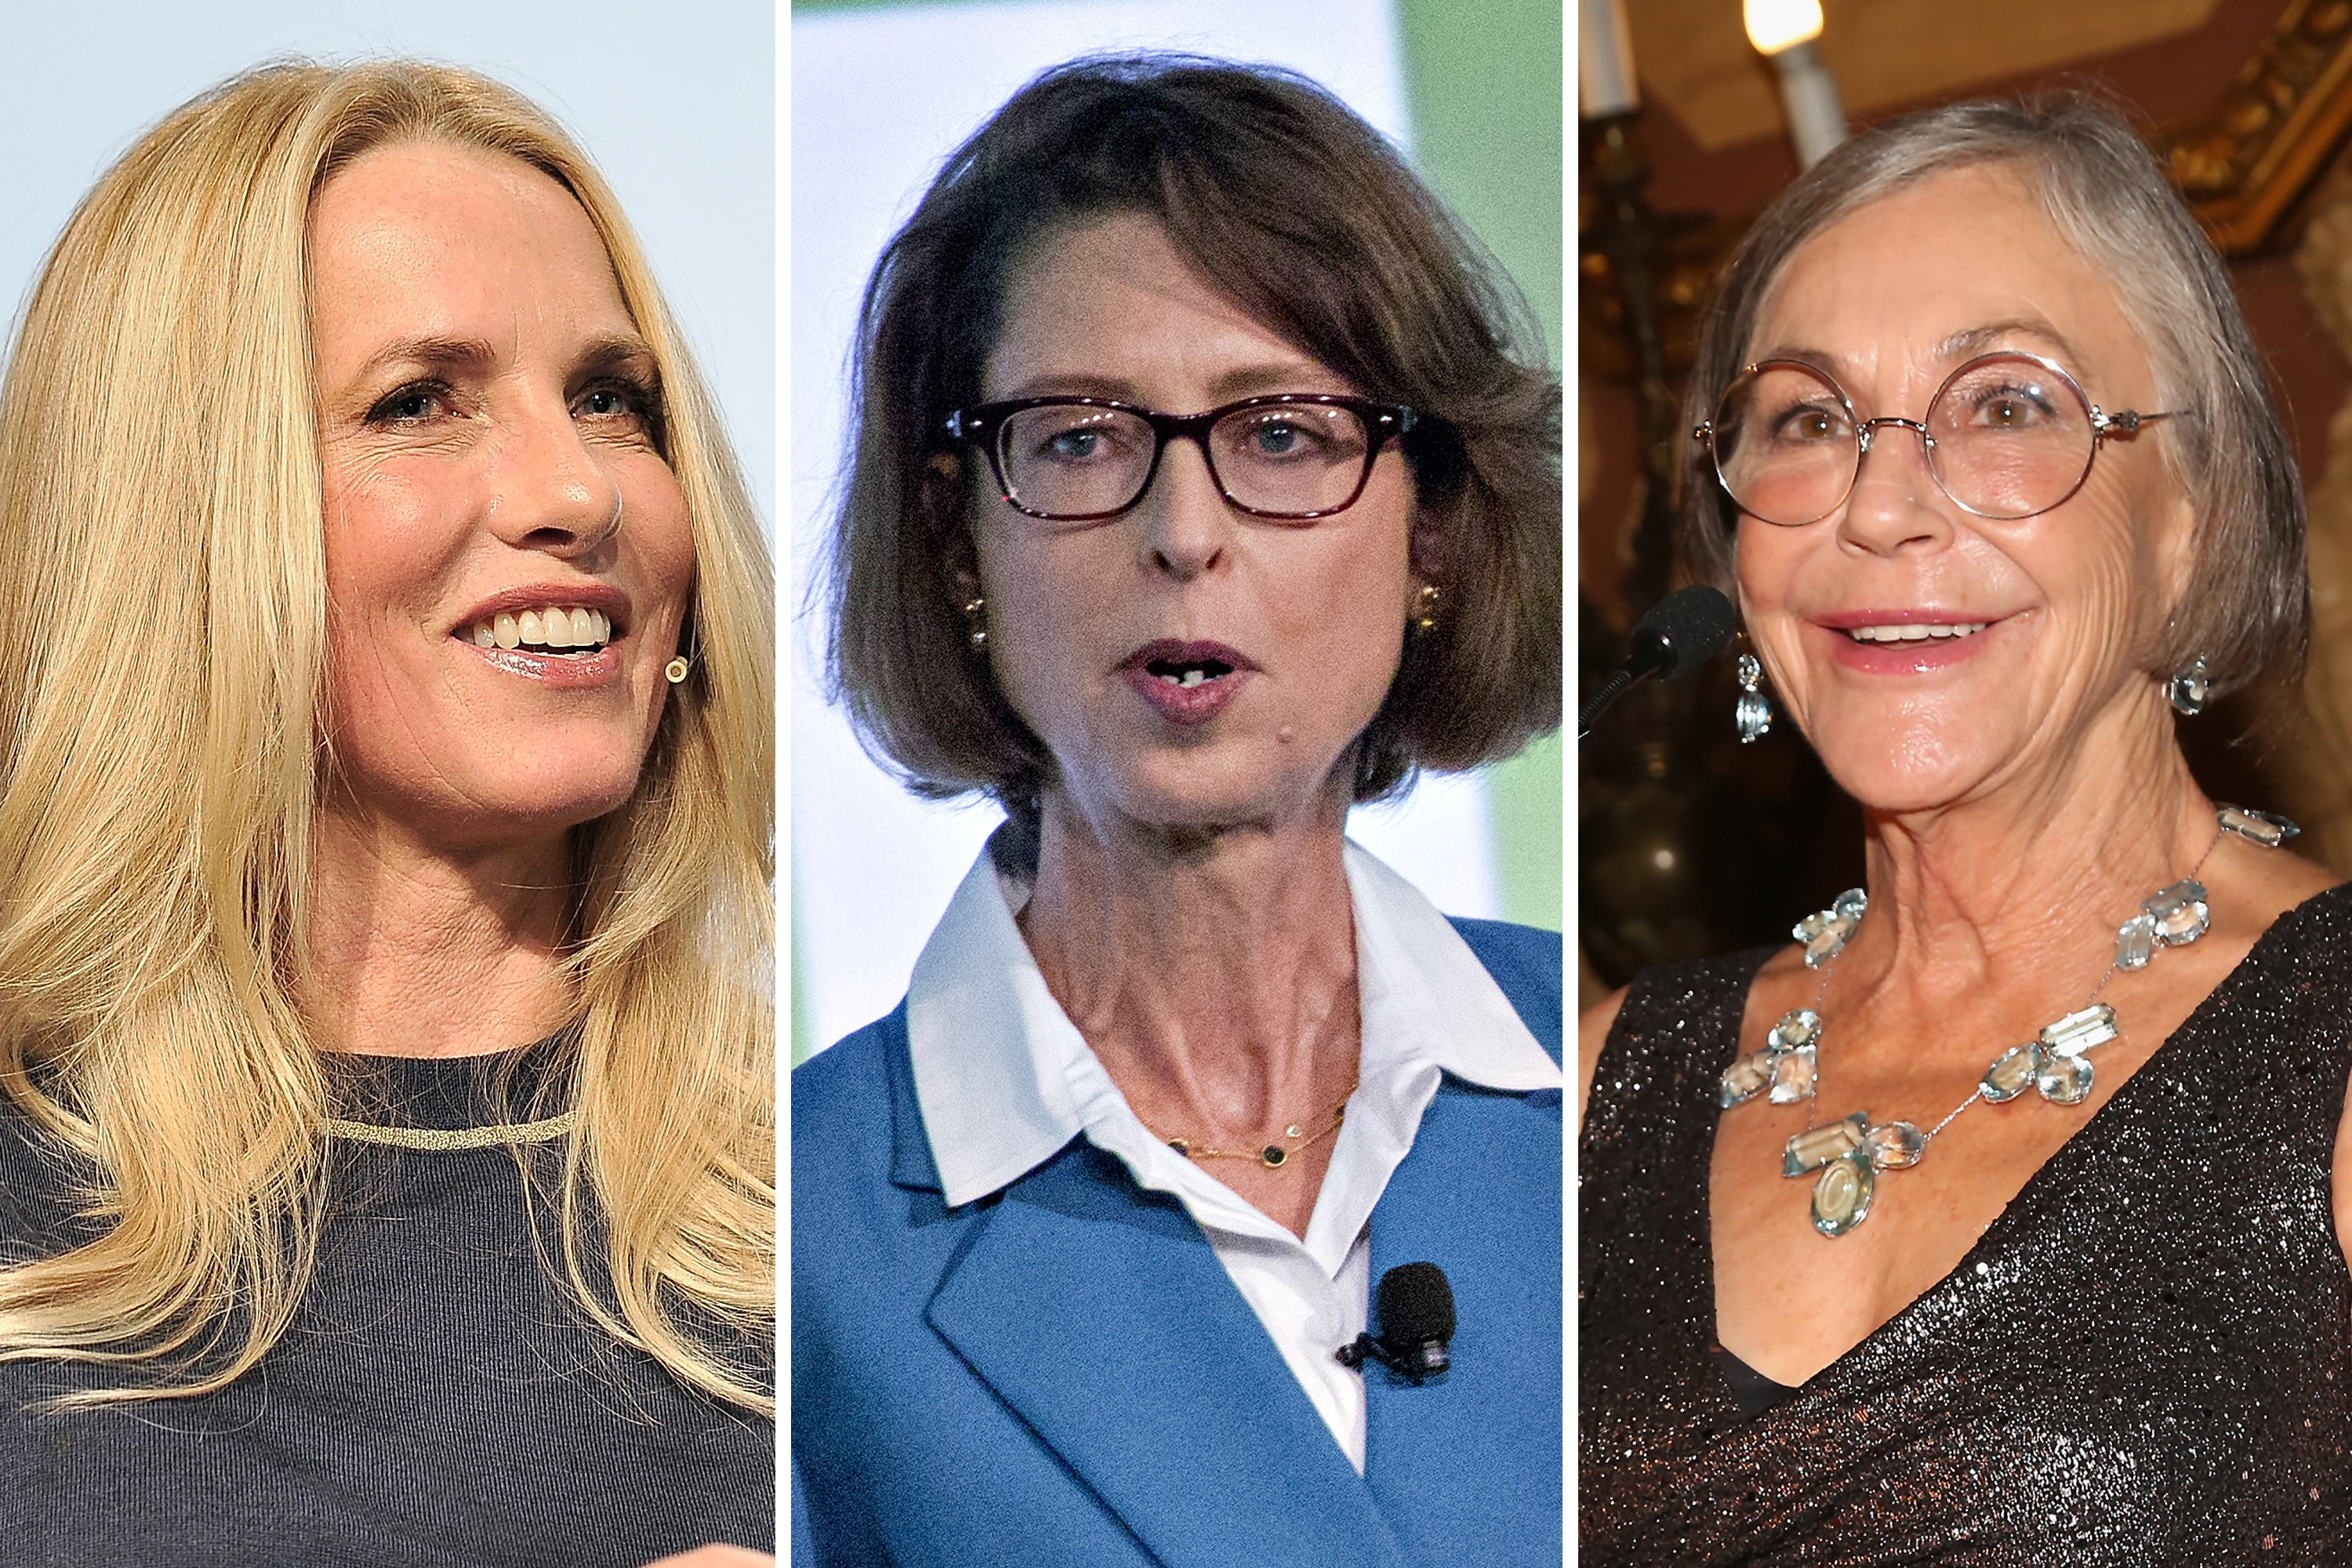 The 10 Richest Women in America.